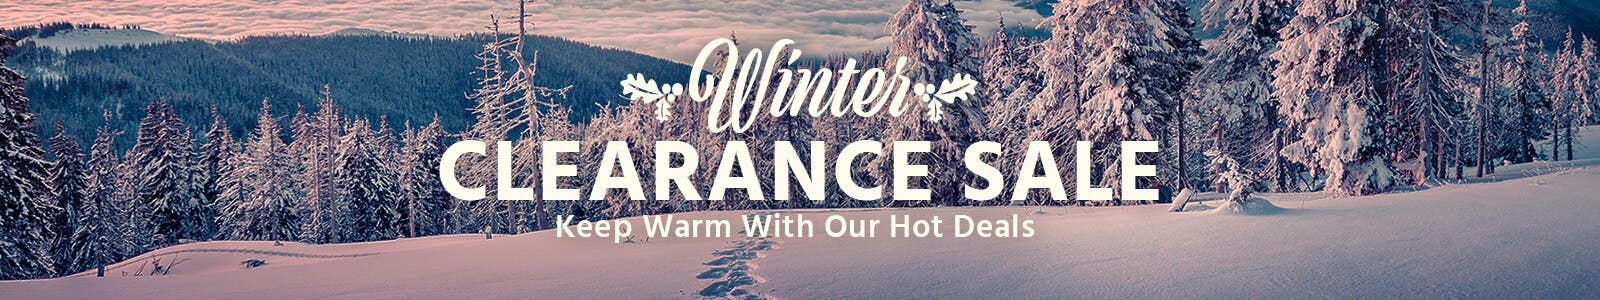 Winter Clearance Sale - Keep Warm with Our Hot Deals